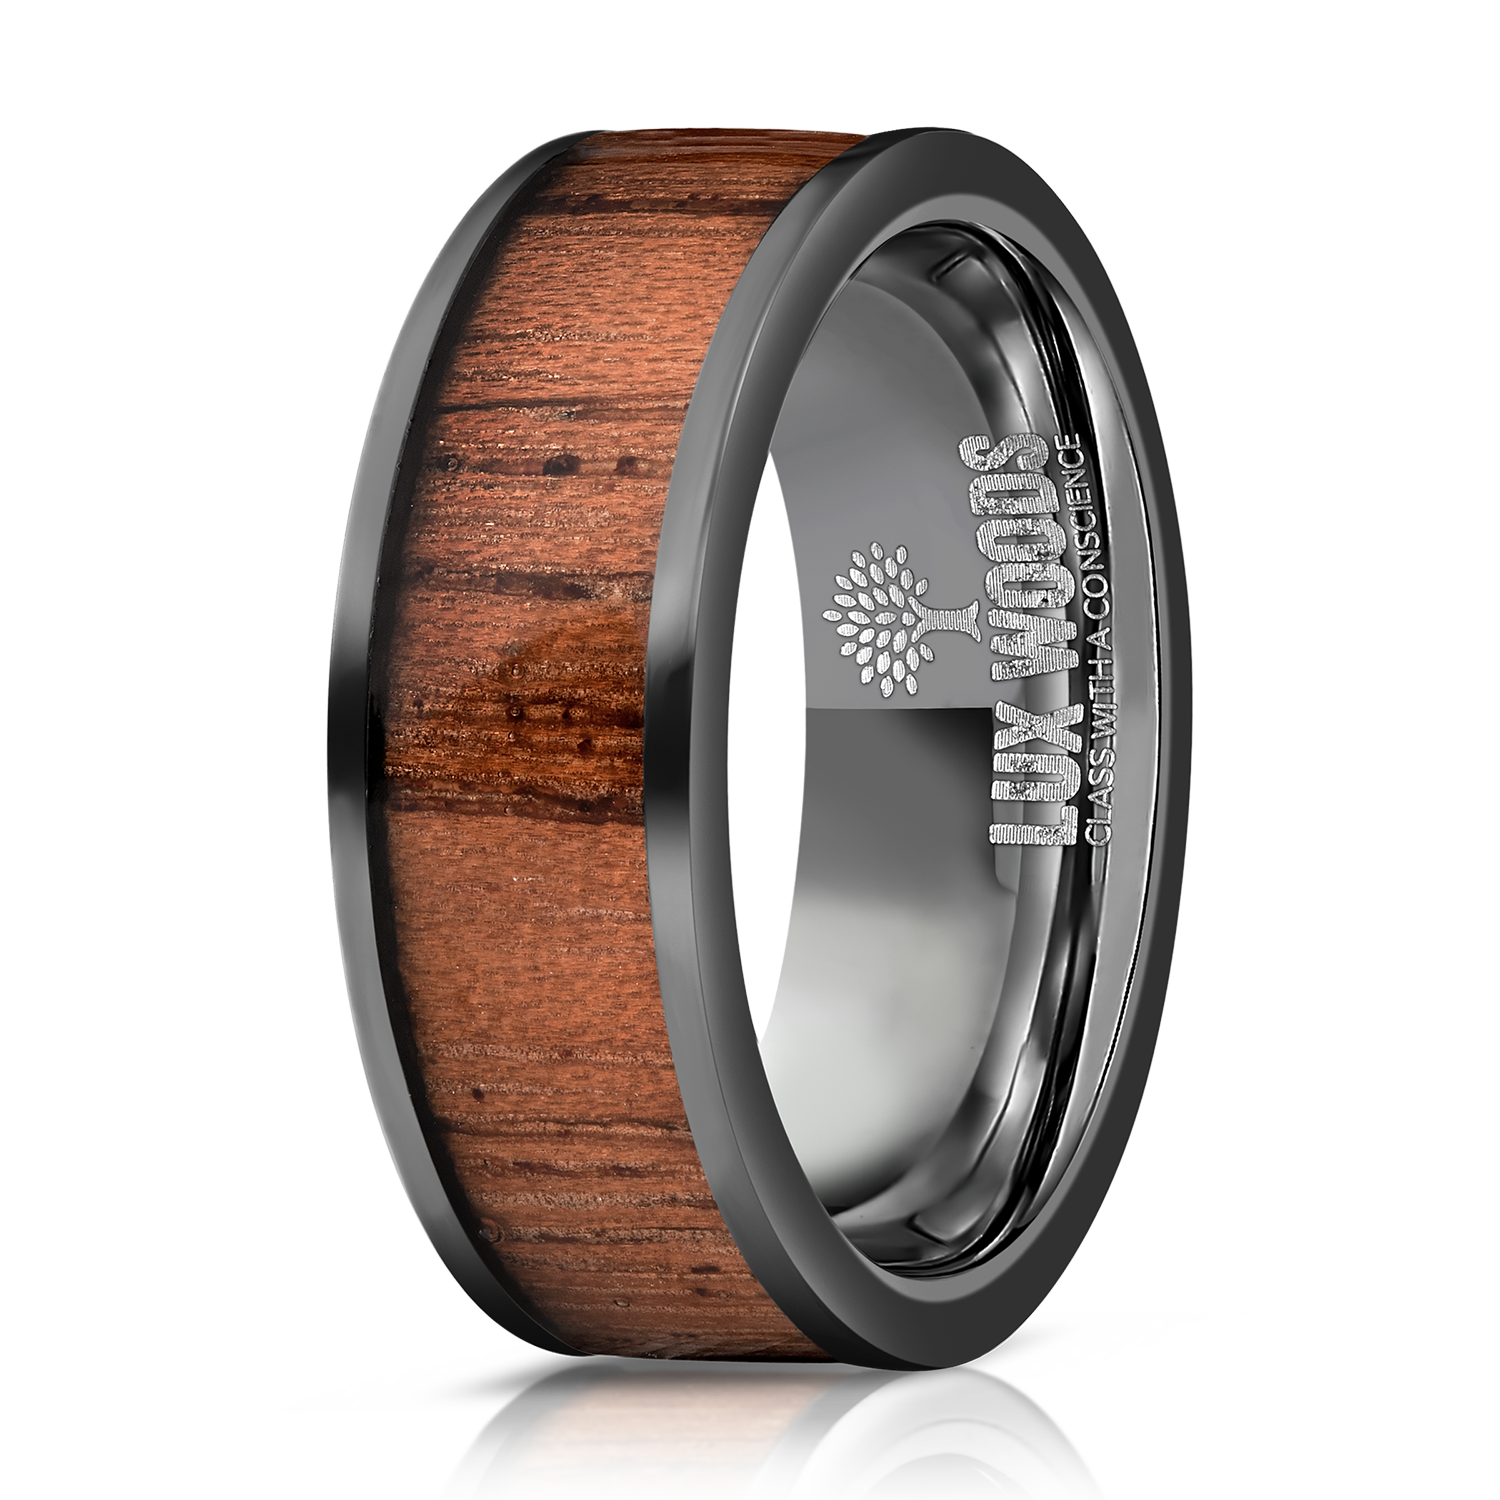 Black Tungsten Carbide- Sapele Wood Inlay